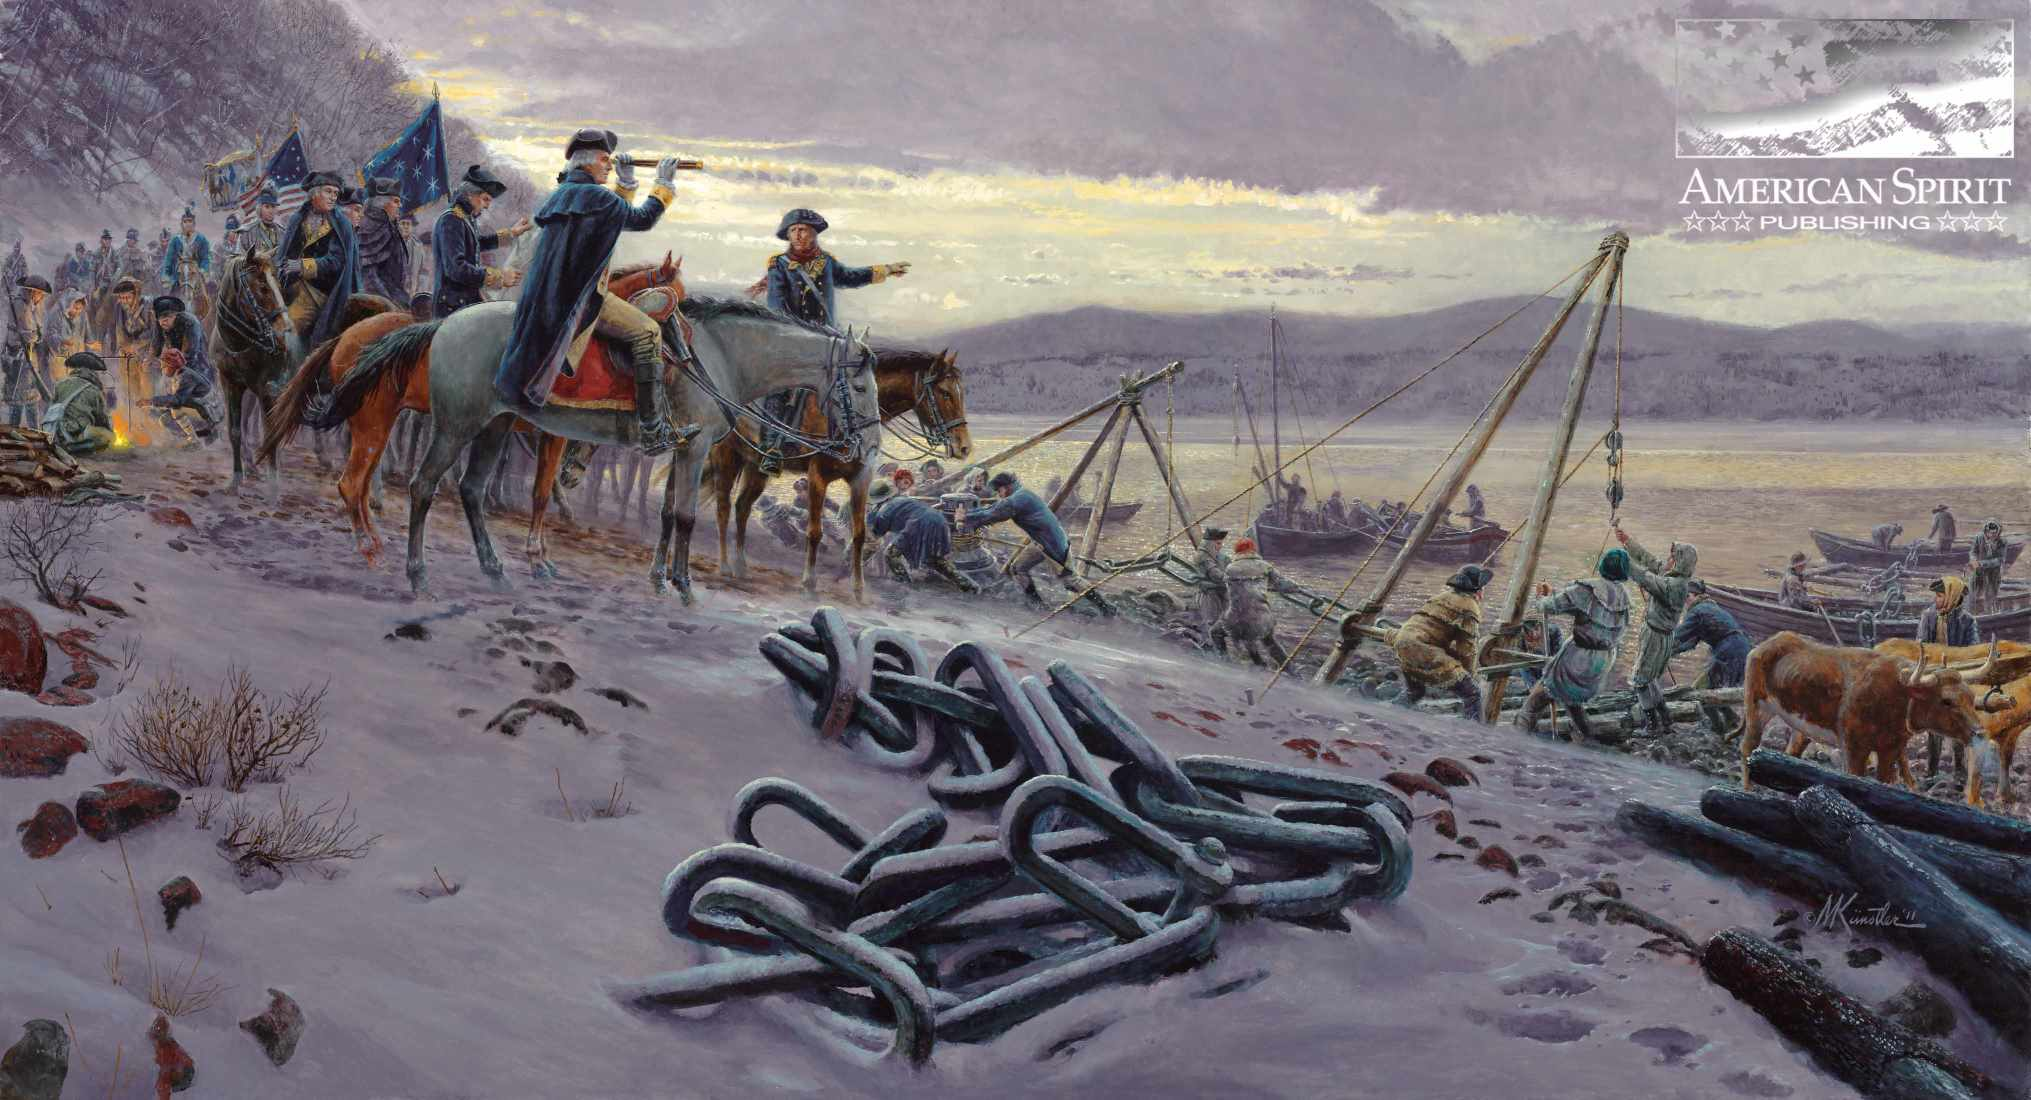 Washington's Watch Chain by Mort Kunstler